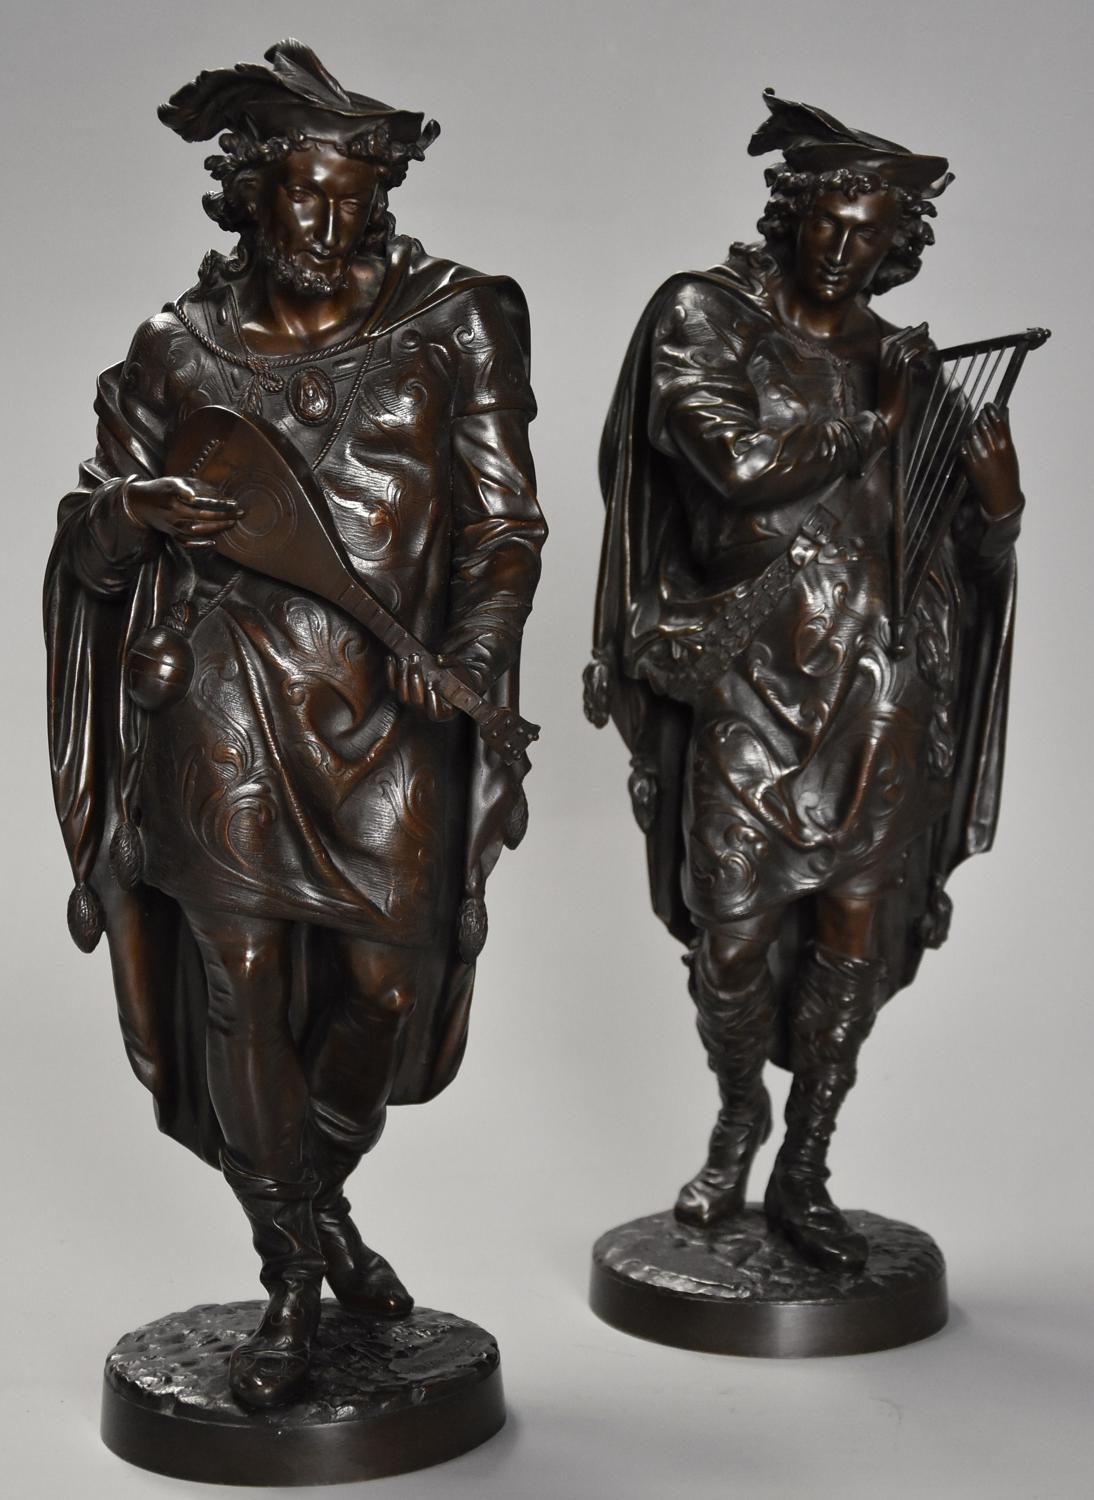 Superb pair of French 19thc bronze figures of minstrels or musicians